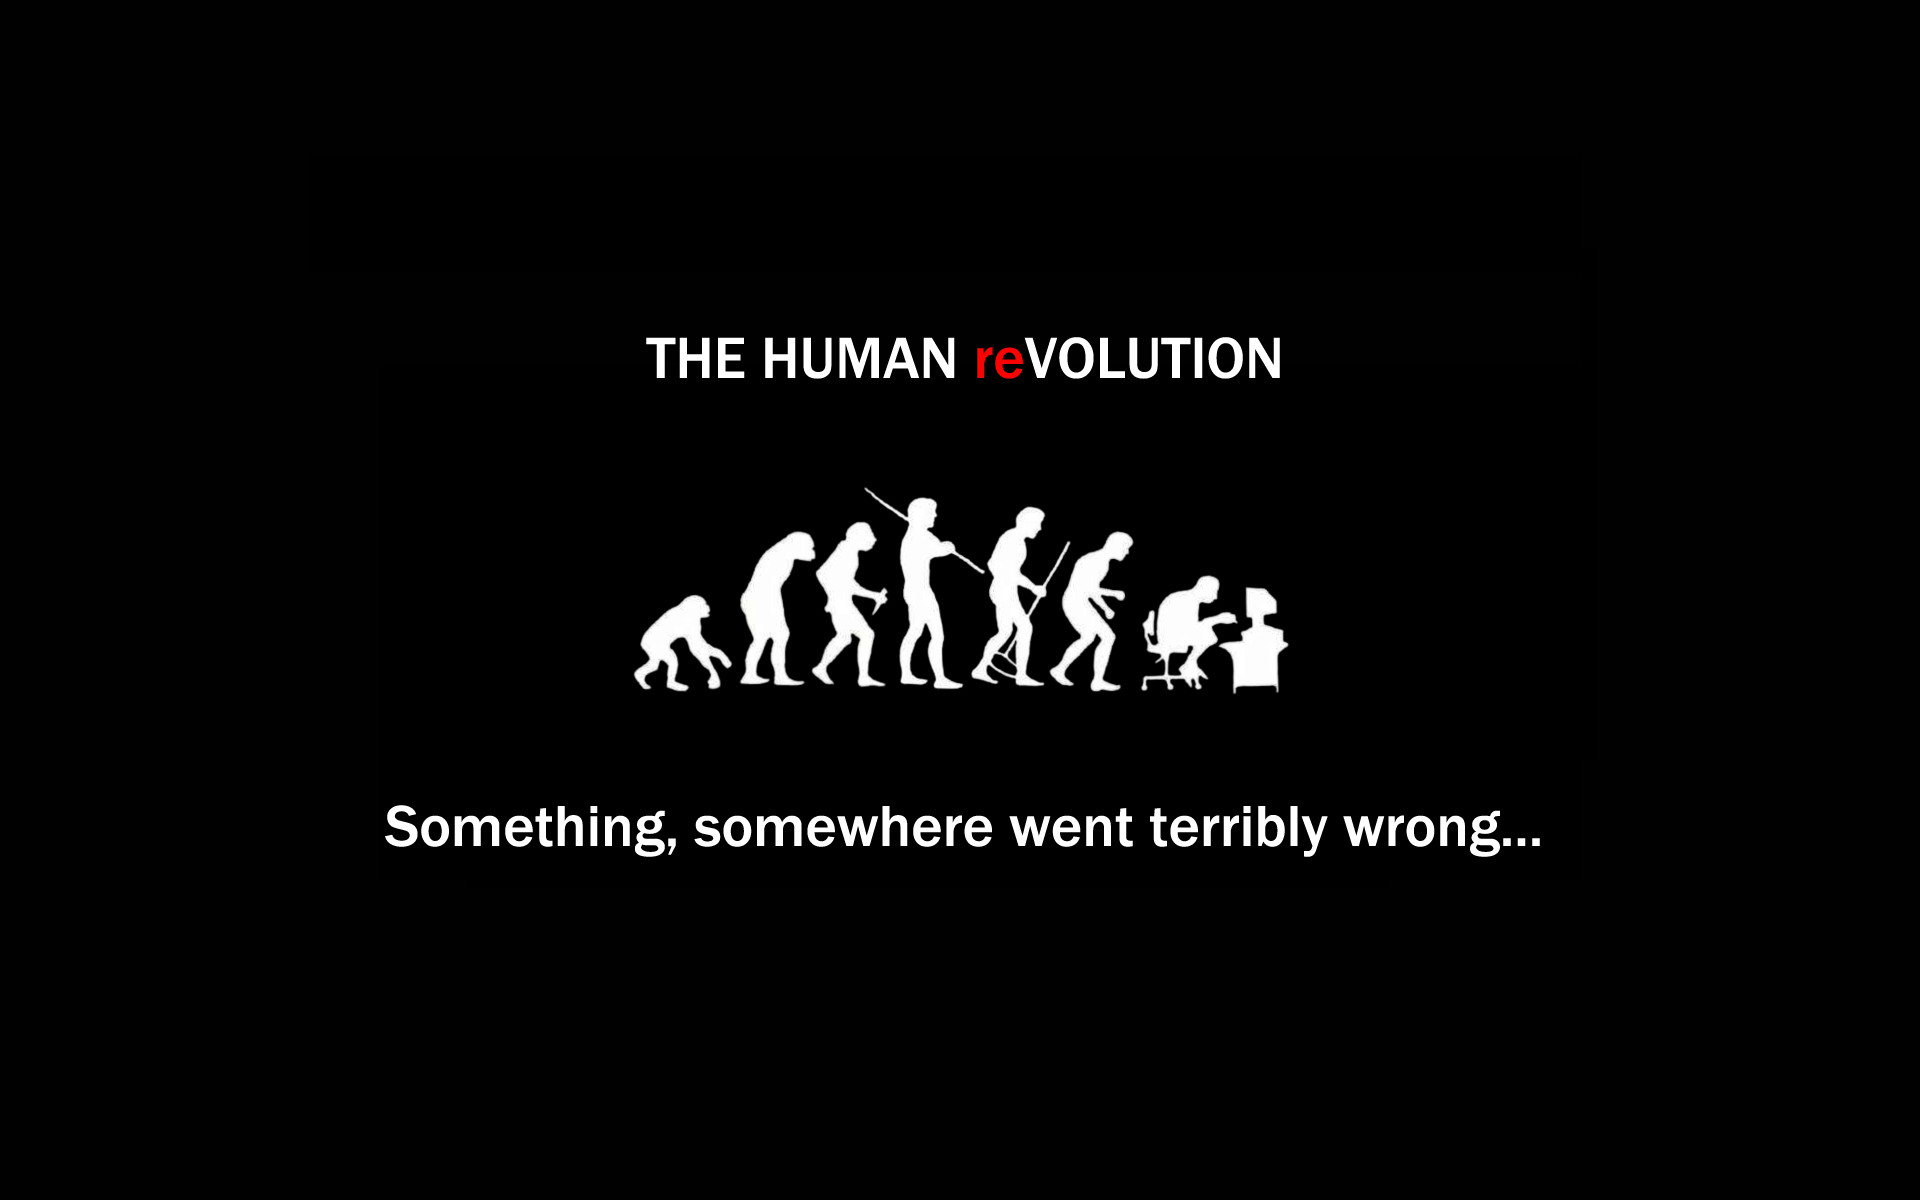 Evolution theory says that humans evolved from primates over long period of  time. Many believe